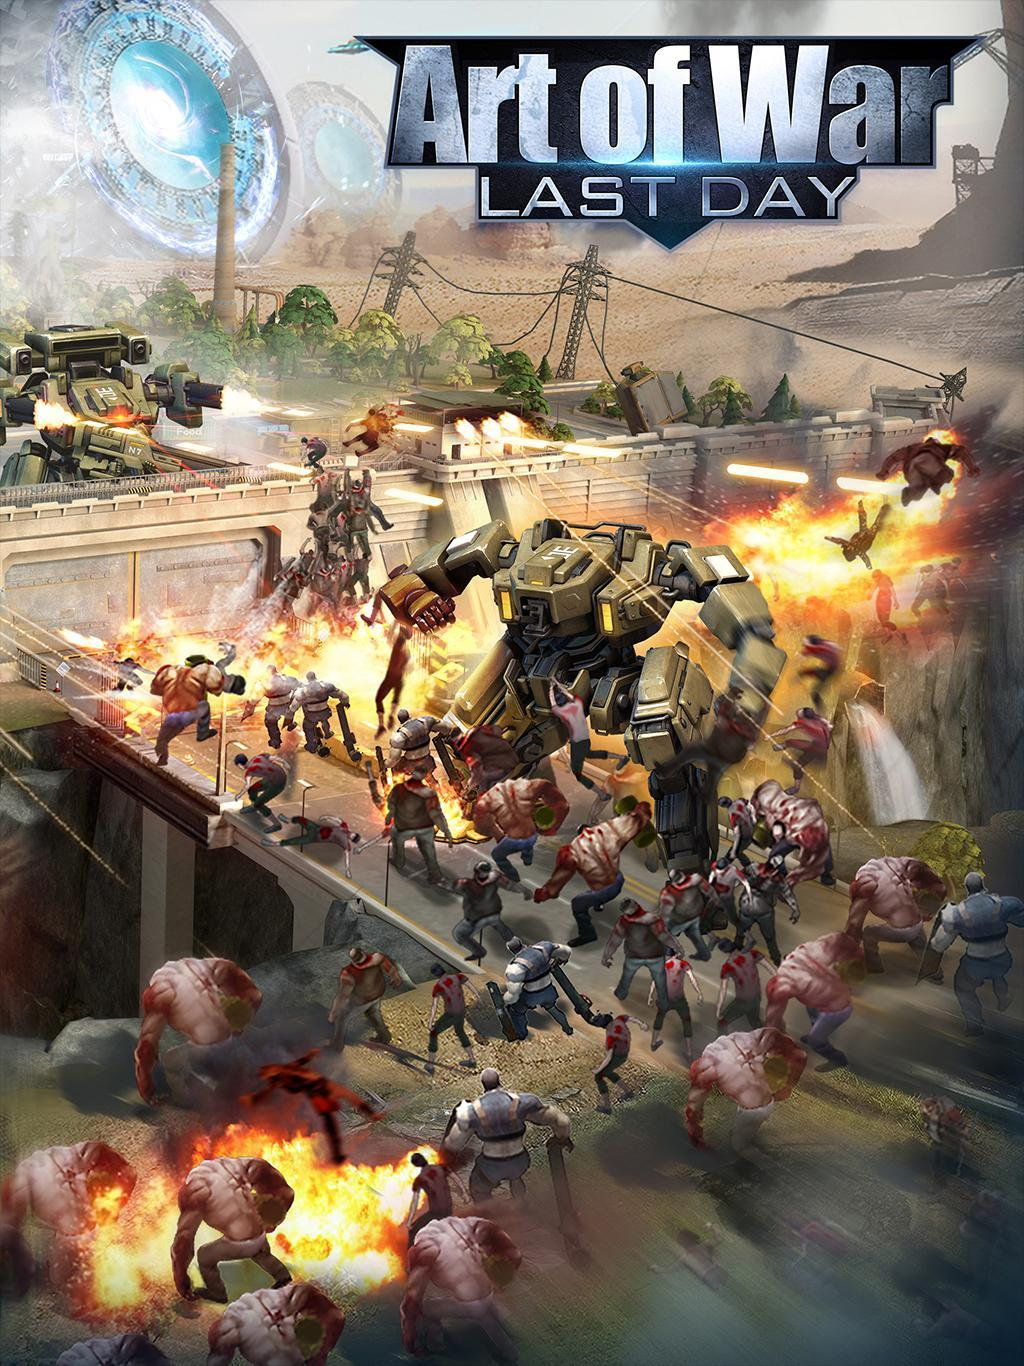 Art of War : Last Day for Android - APK Download